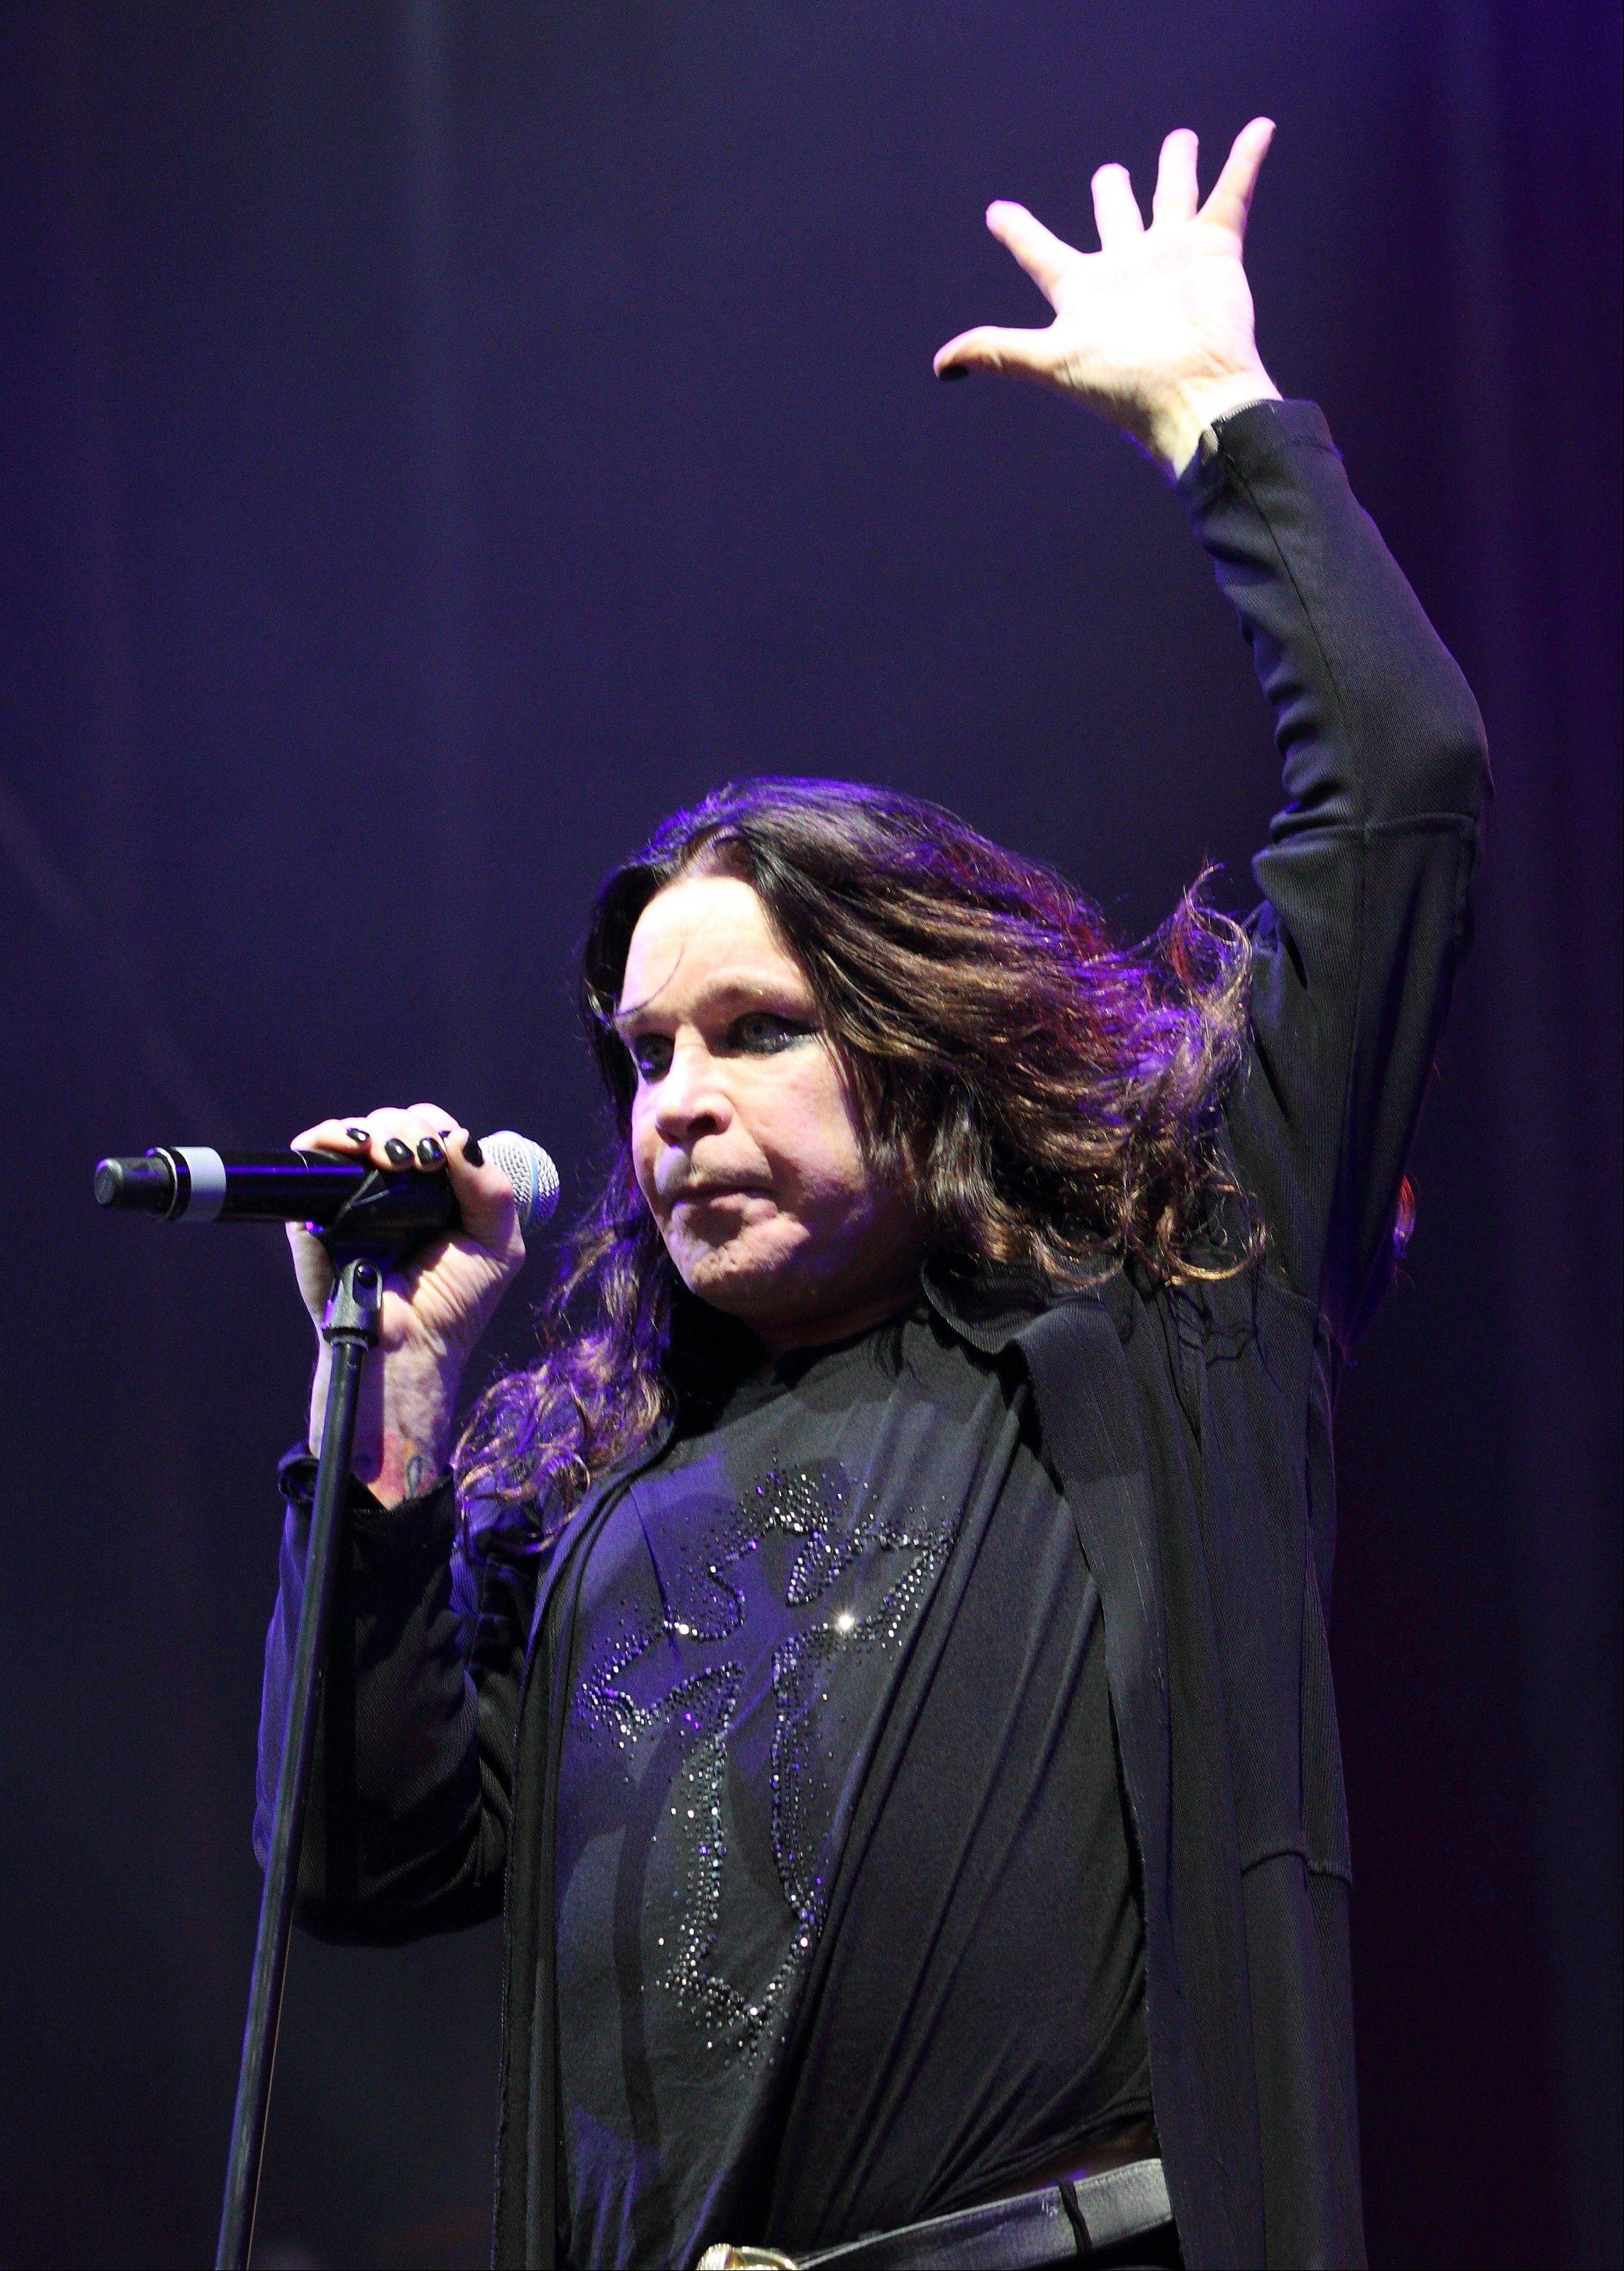 Ozzy Osborne of Black Sabbath performs at the Lollapalooza music festival on opening day in Chicago's Grant Park on Friday, Aug. 3, 2012.